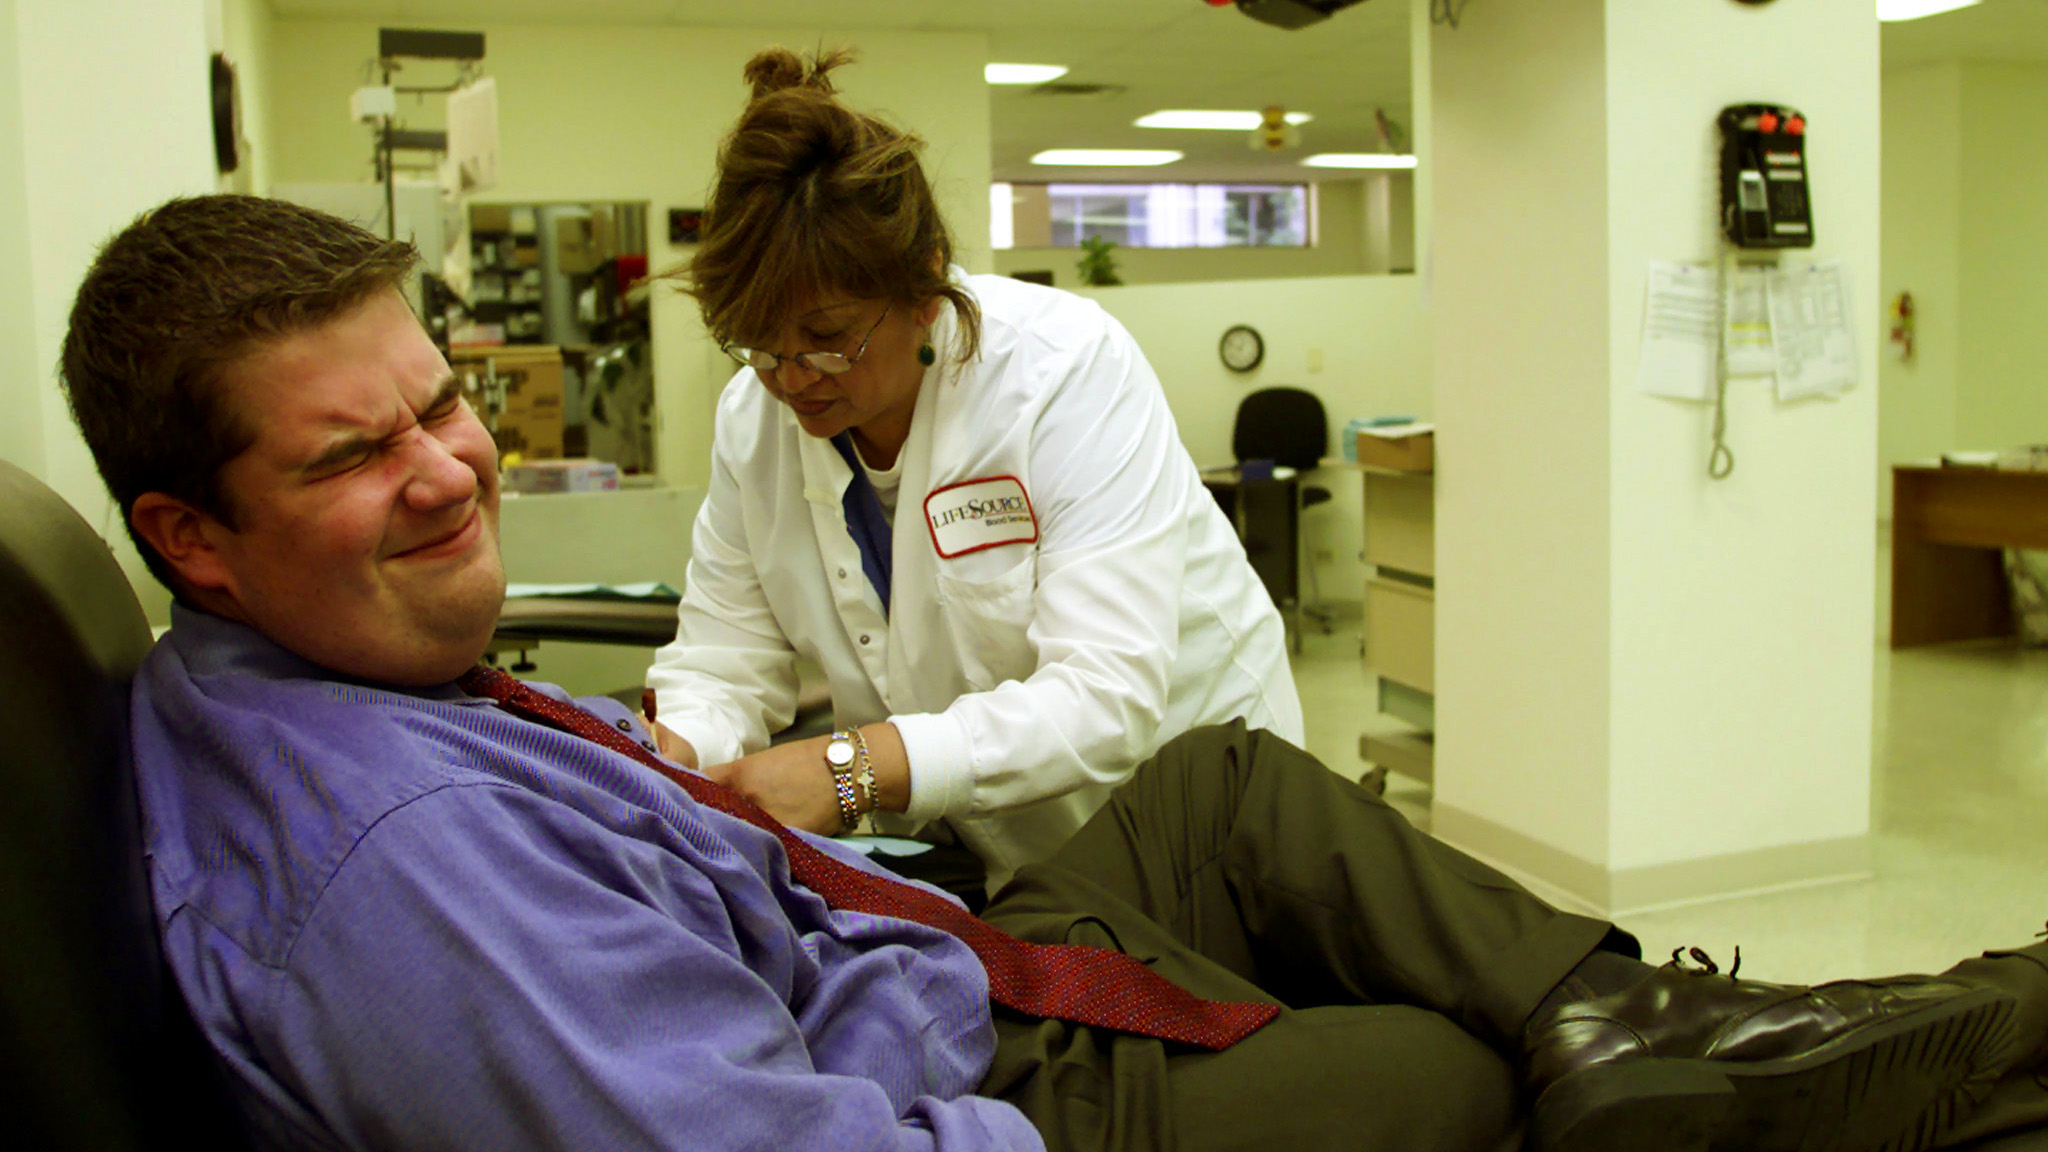 Bob Derboghossian (L) of Chicago, grimaces as phlebotomist Maria Morales (R) inserts a needle to draw blood at Lifesource Blood Center in Chicago, September 12, 2001, as a news program plays on the television in the background, one day after the attack by terrorists on New York City and Washington, D.C. The wait to donate blood was from 2 to 4 hours.